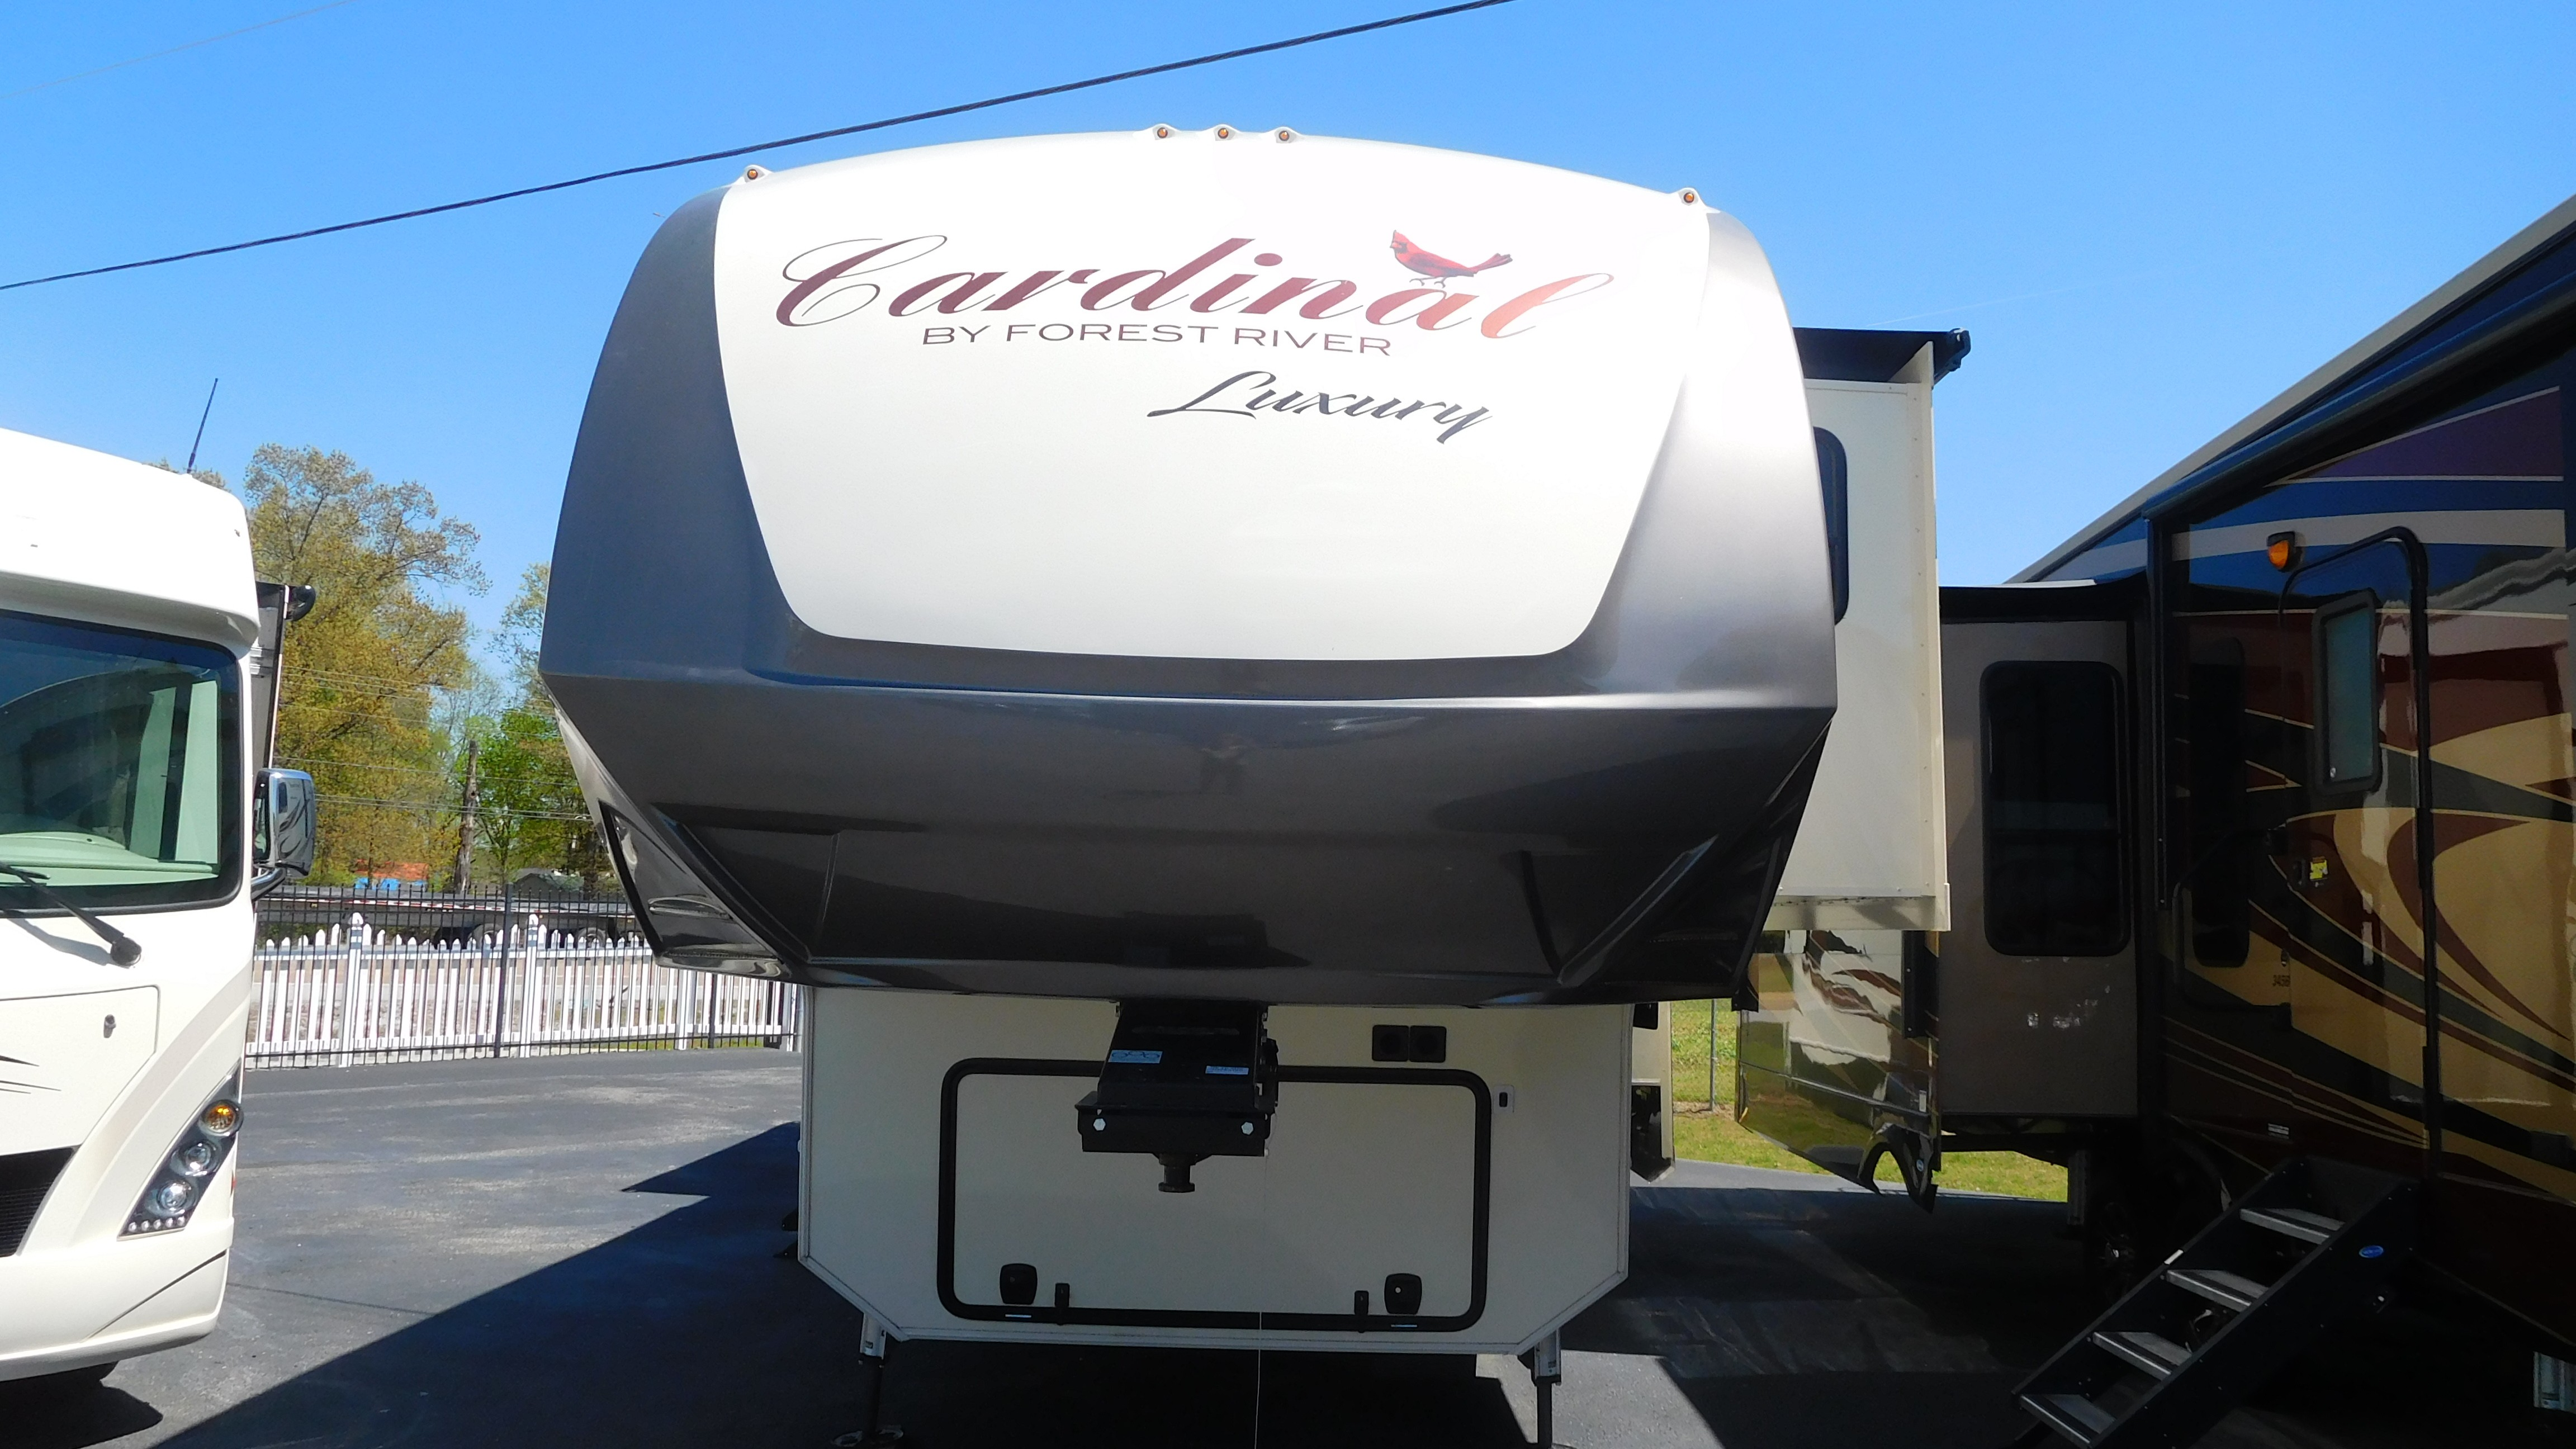 RV Dealer in Tennessee: Cougar, Keystone RV, Forest River